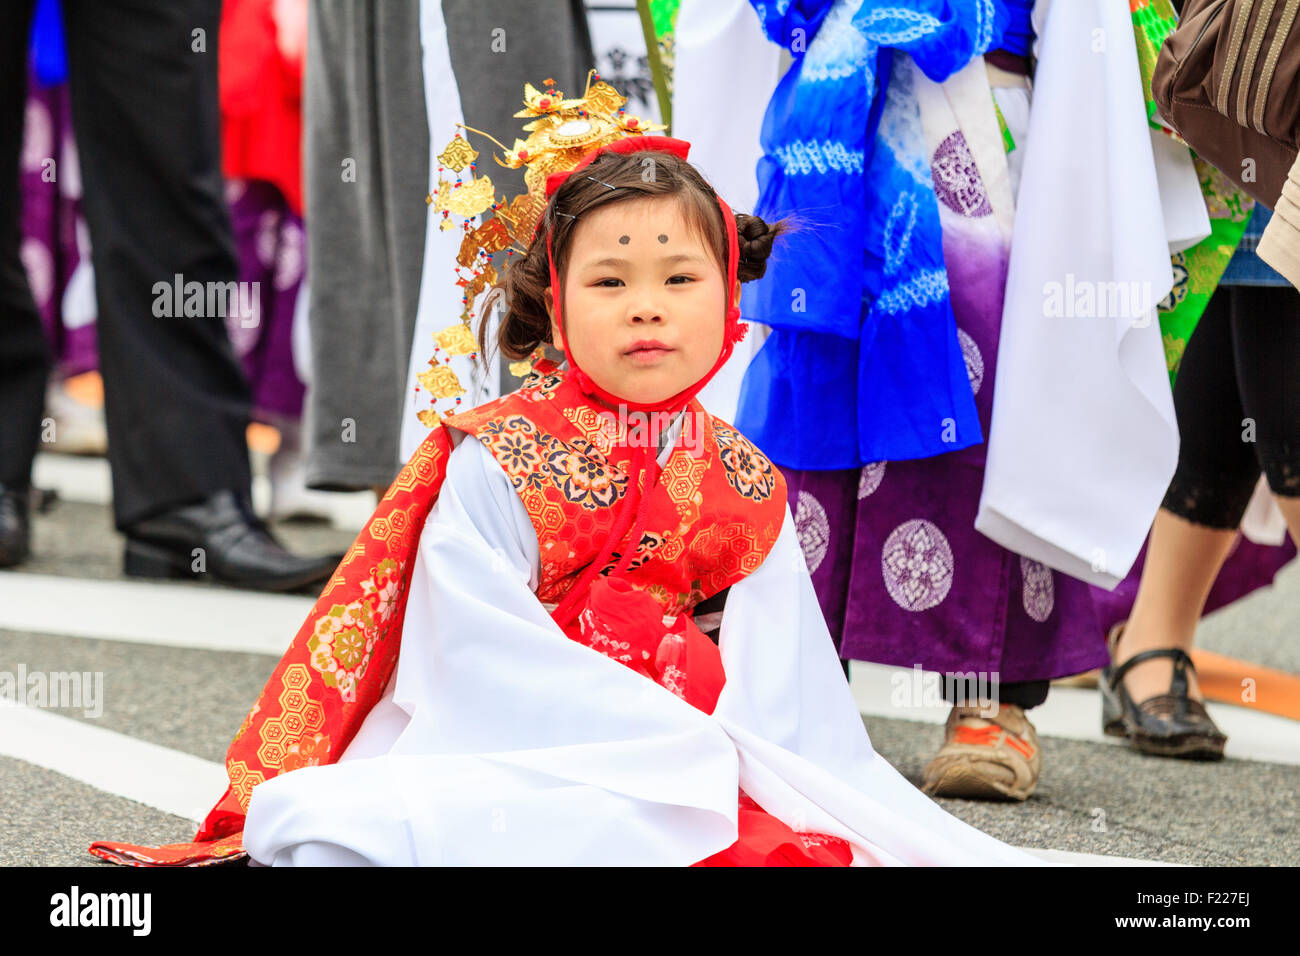 Japan, kawanishi, Osaka. Genji Festival. Little girl, Heian princess costume, sitting on street, bad tempered - Stock Image